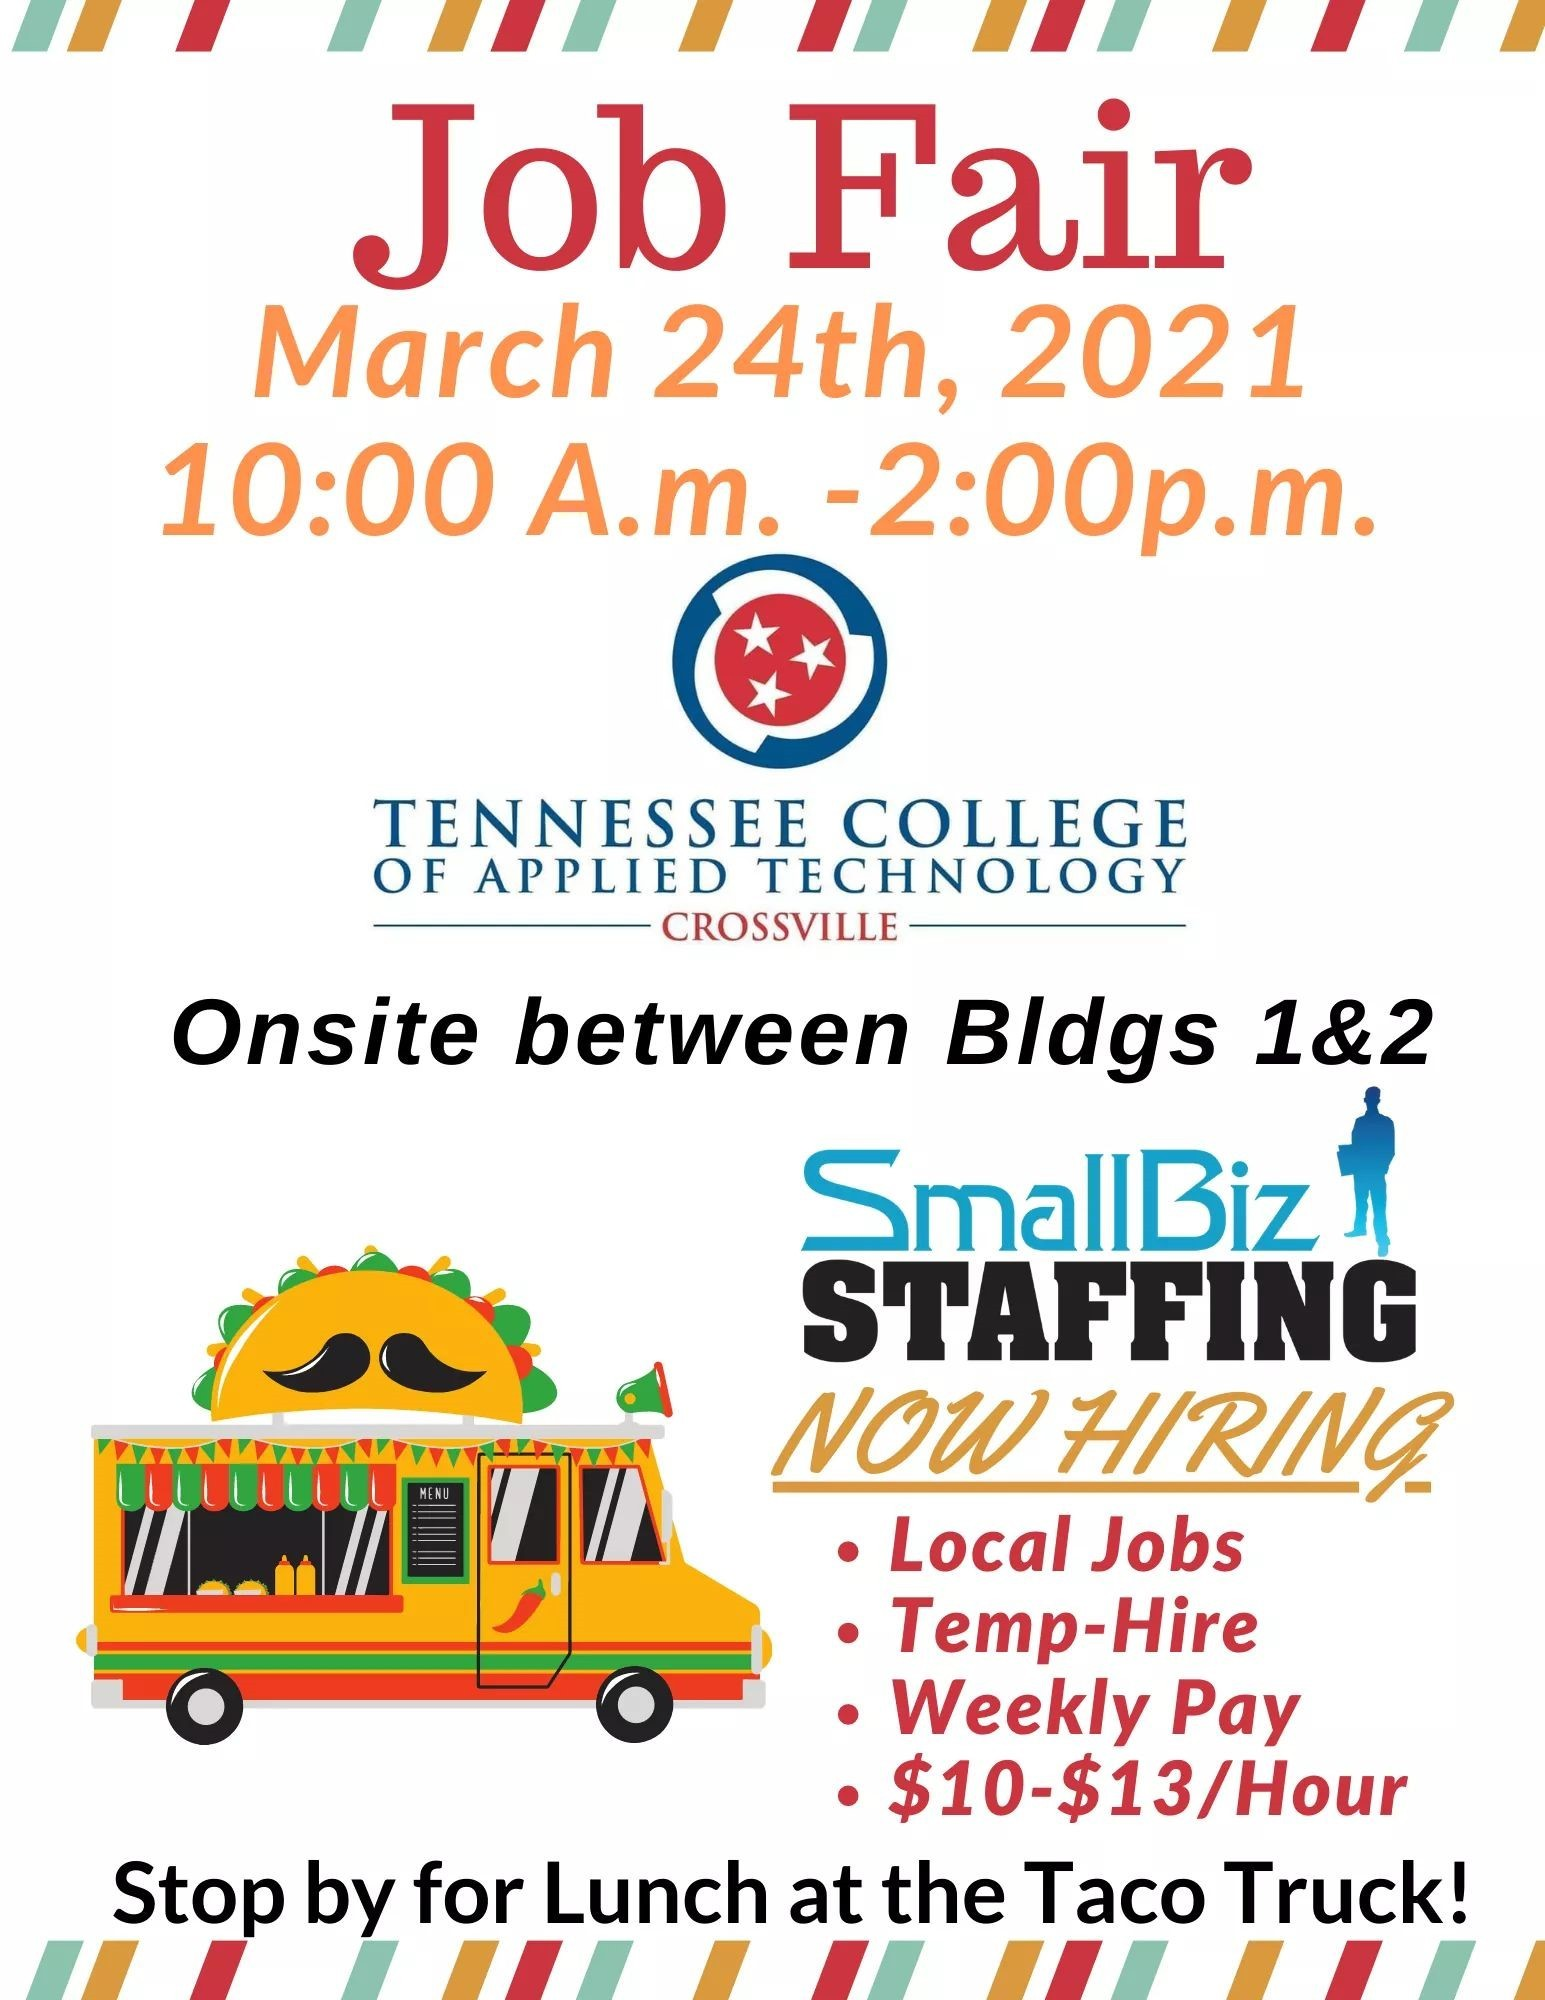 Job Fair March 24th TCAT Crossville